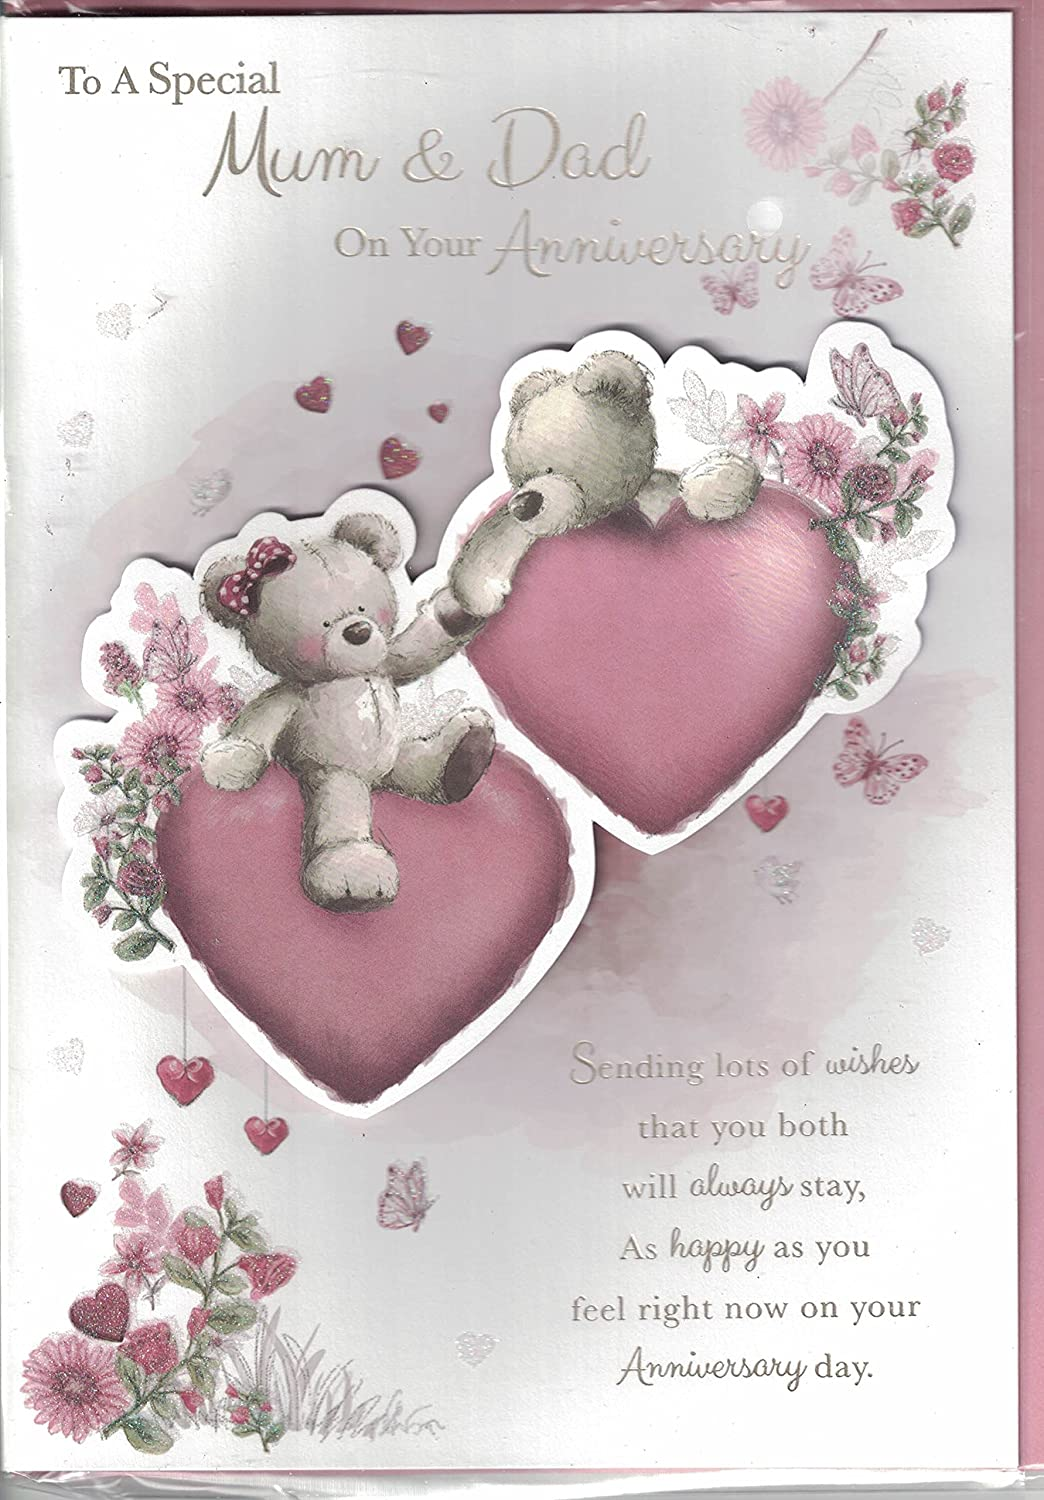 Mum And Dad Wedding Anniversary Card Anniversary Wishes With Love